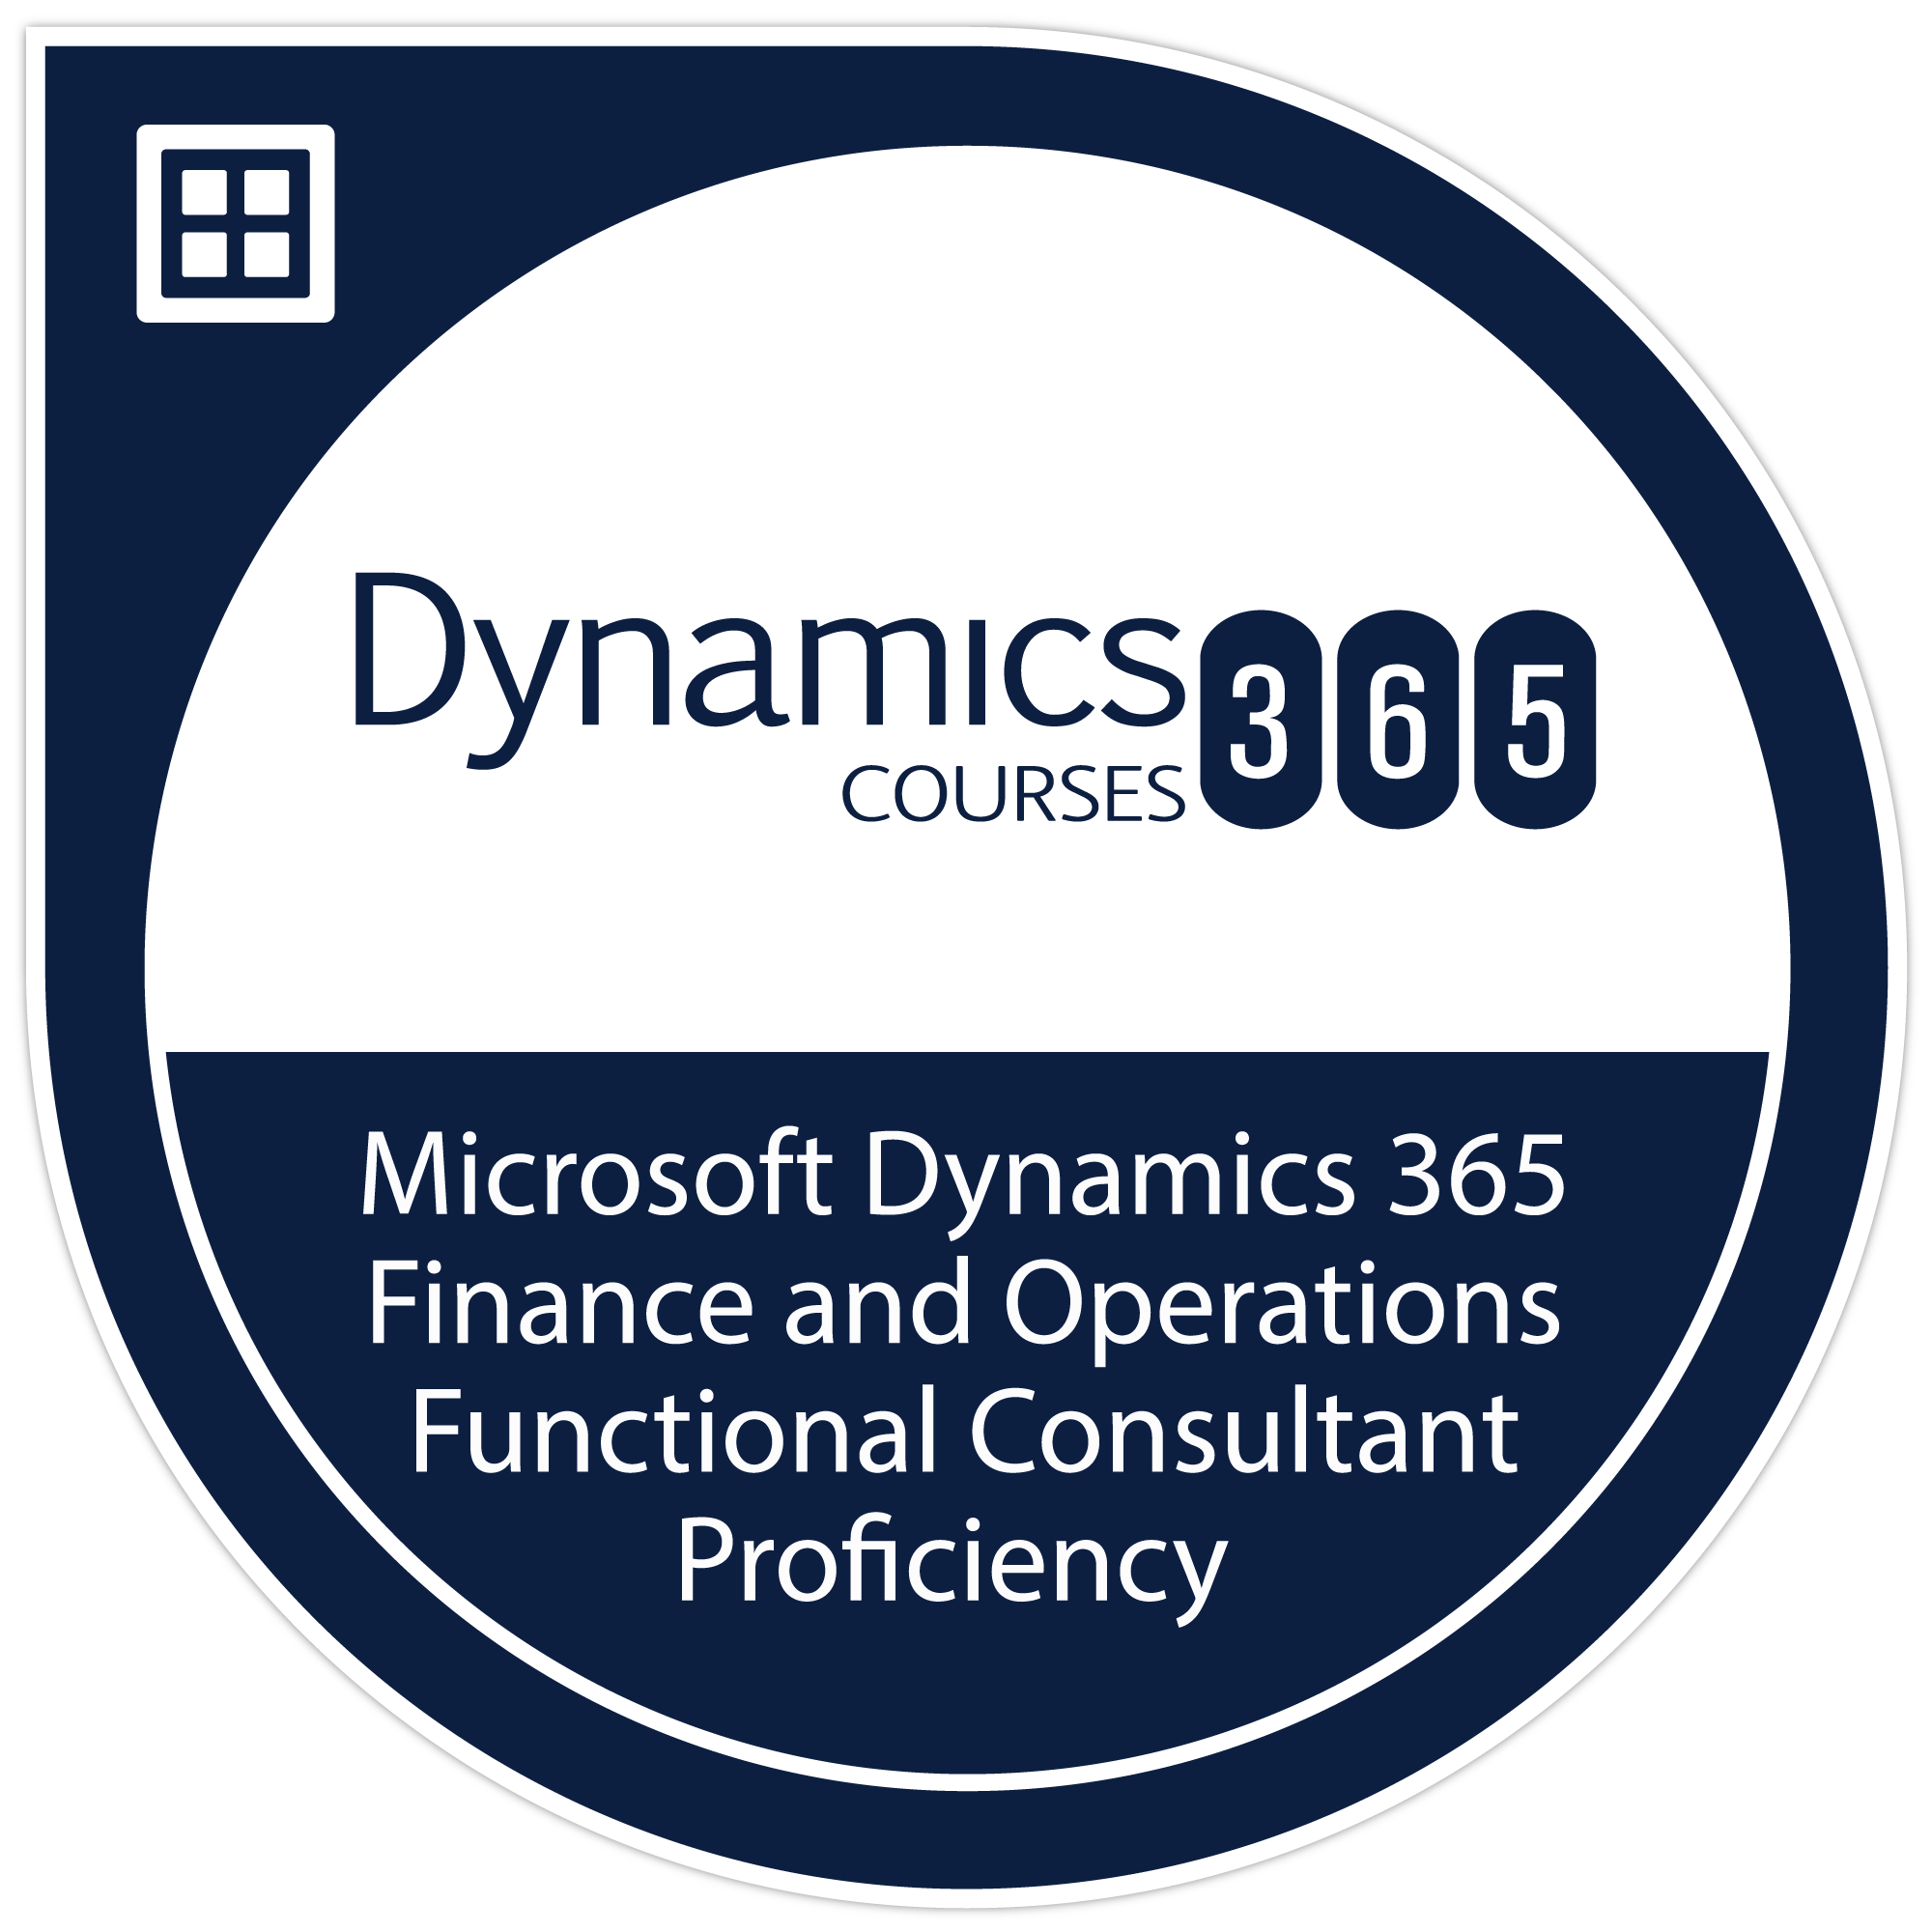 Microsoft Dynamics 365 Finance and Operations Functional Consultant Proficiency